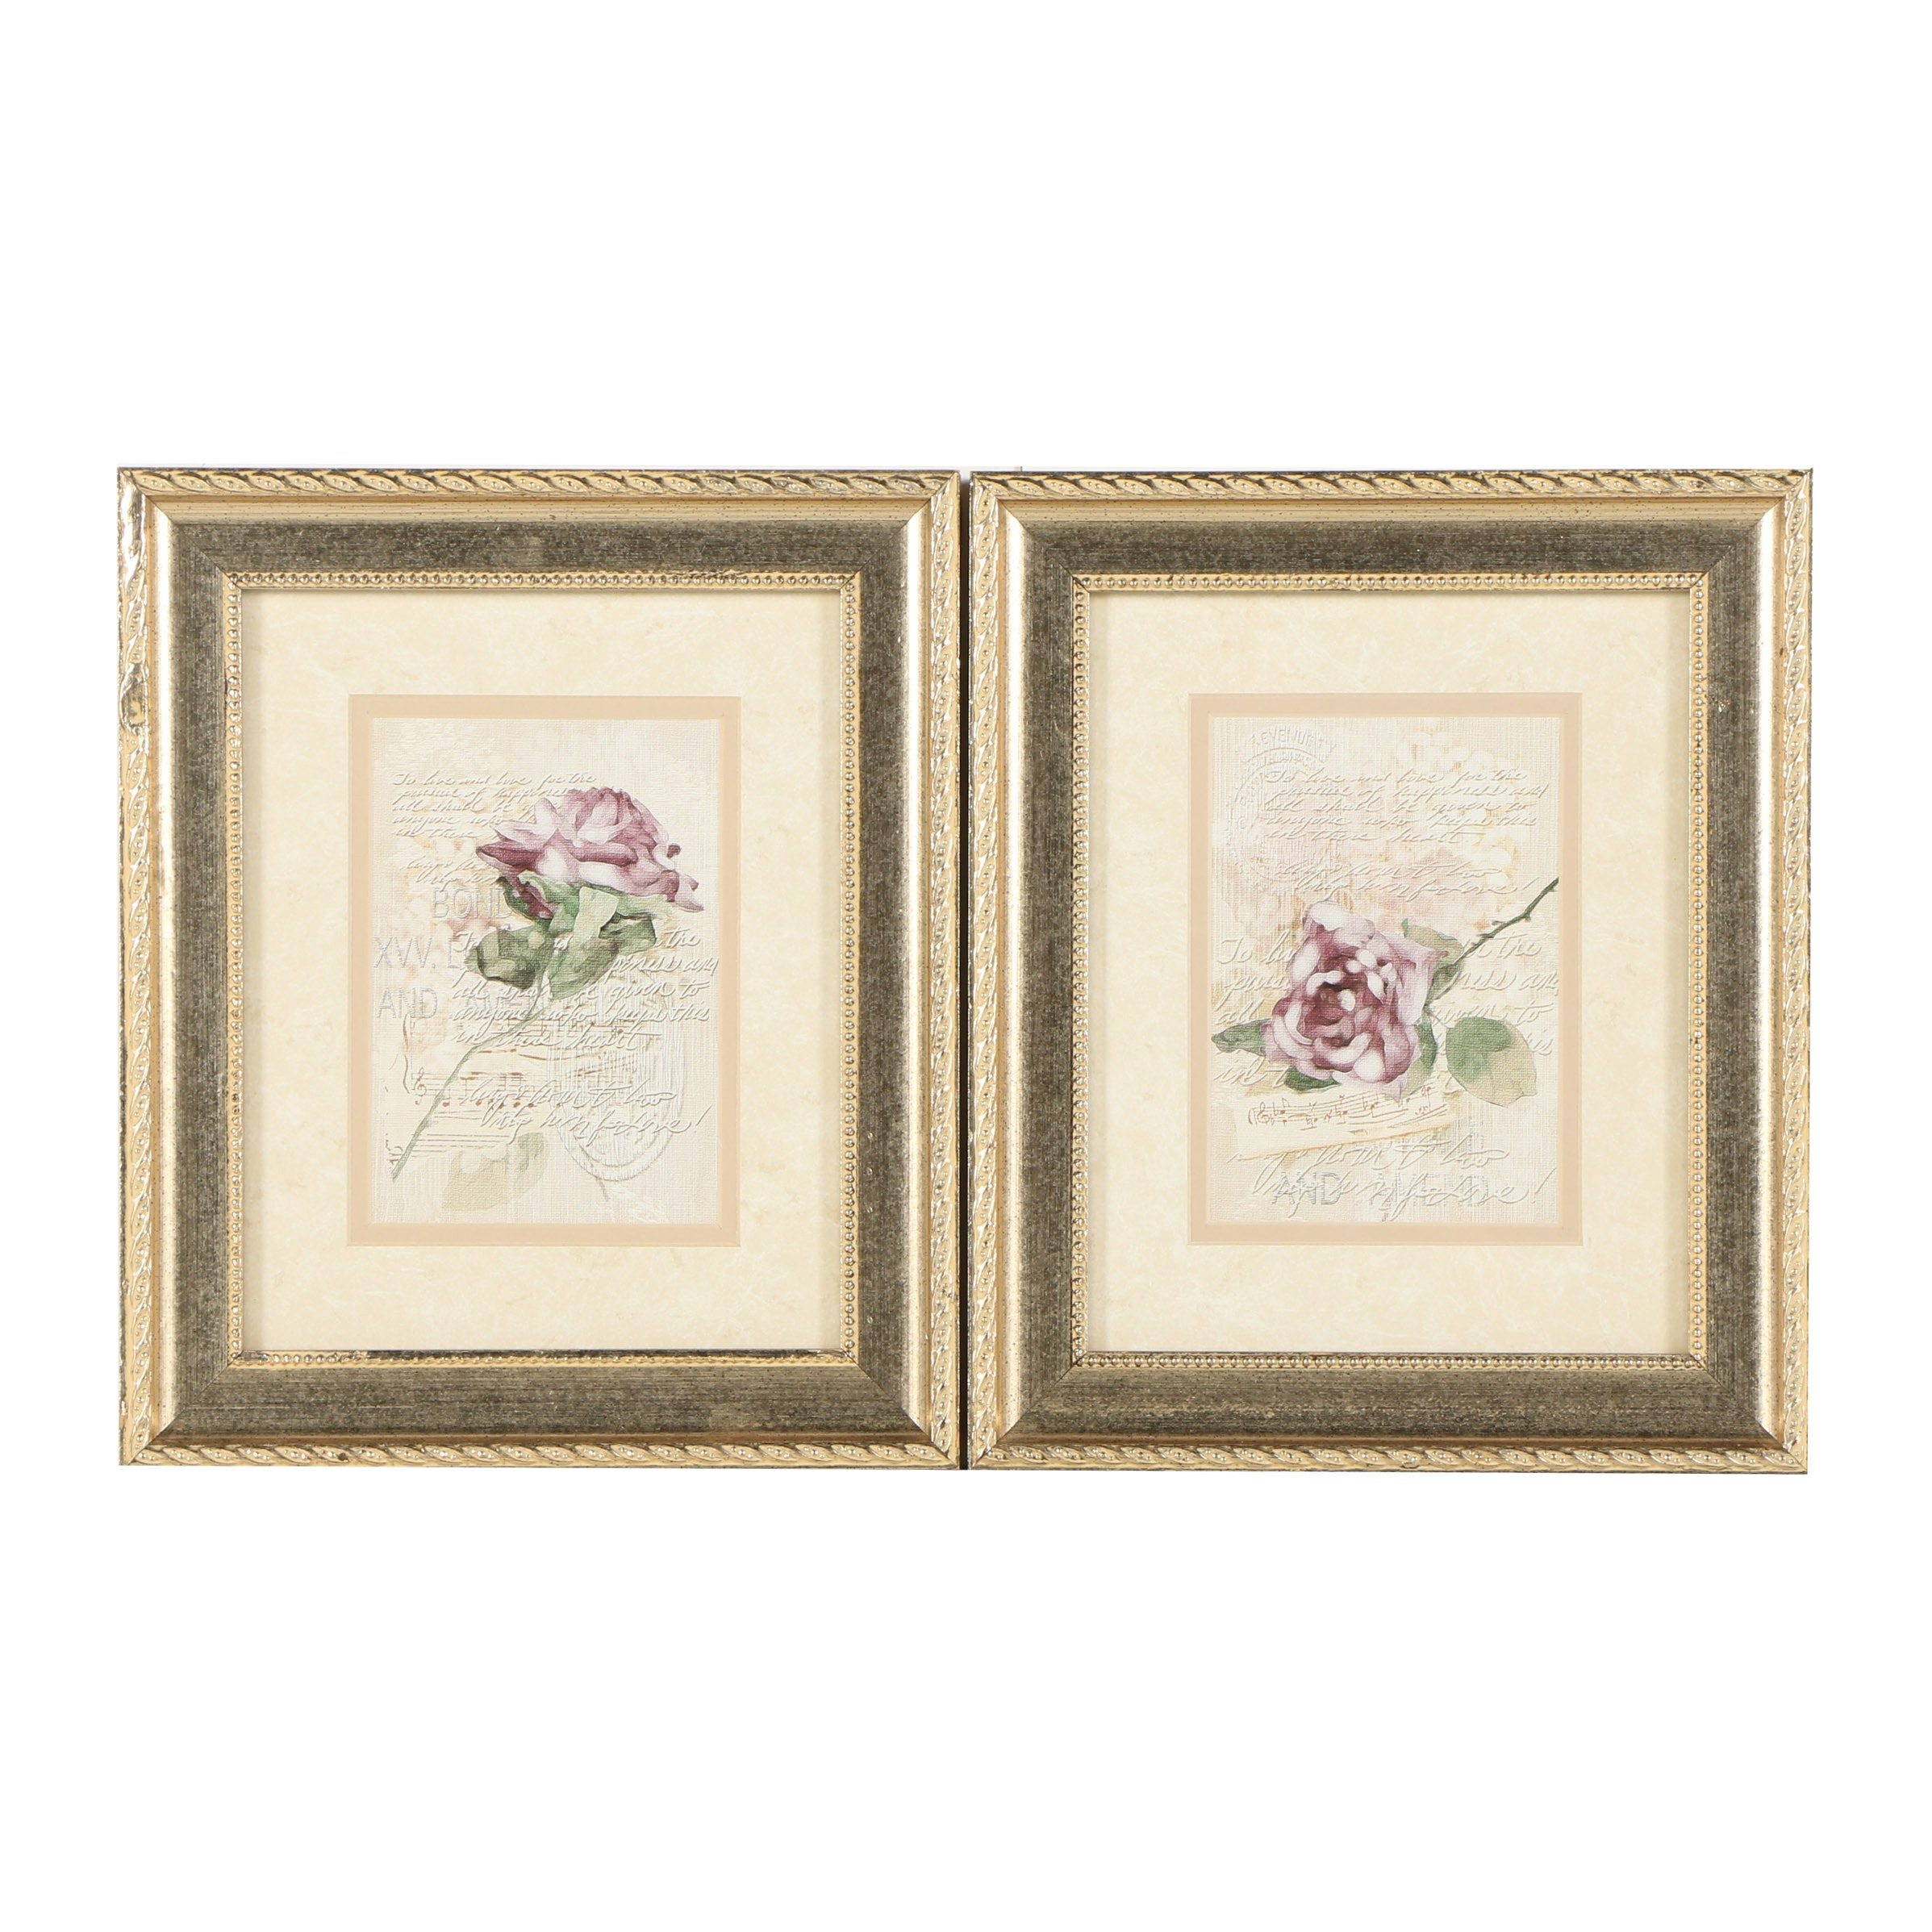 Two Offset Lithographs with Roses